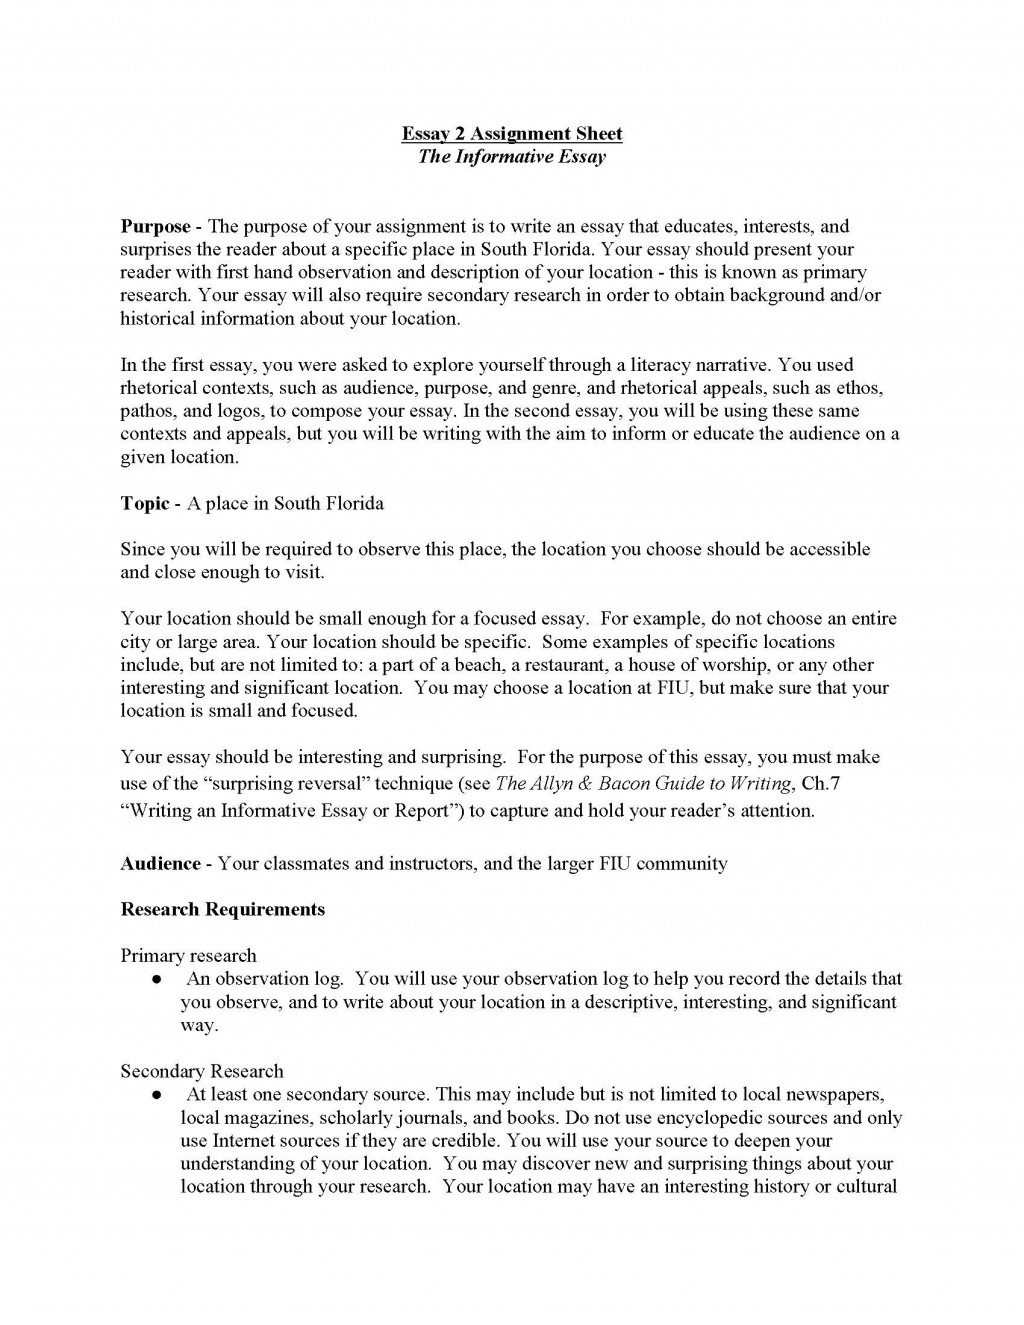 003 Informative Essay Unit Assignment Page 1 Ideas Wondrous Writing Prompts 5th Grade Common Core Expository 4th Pdf Large